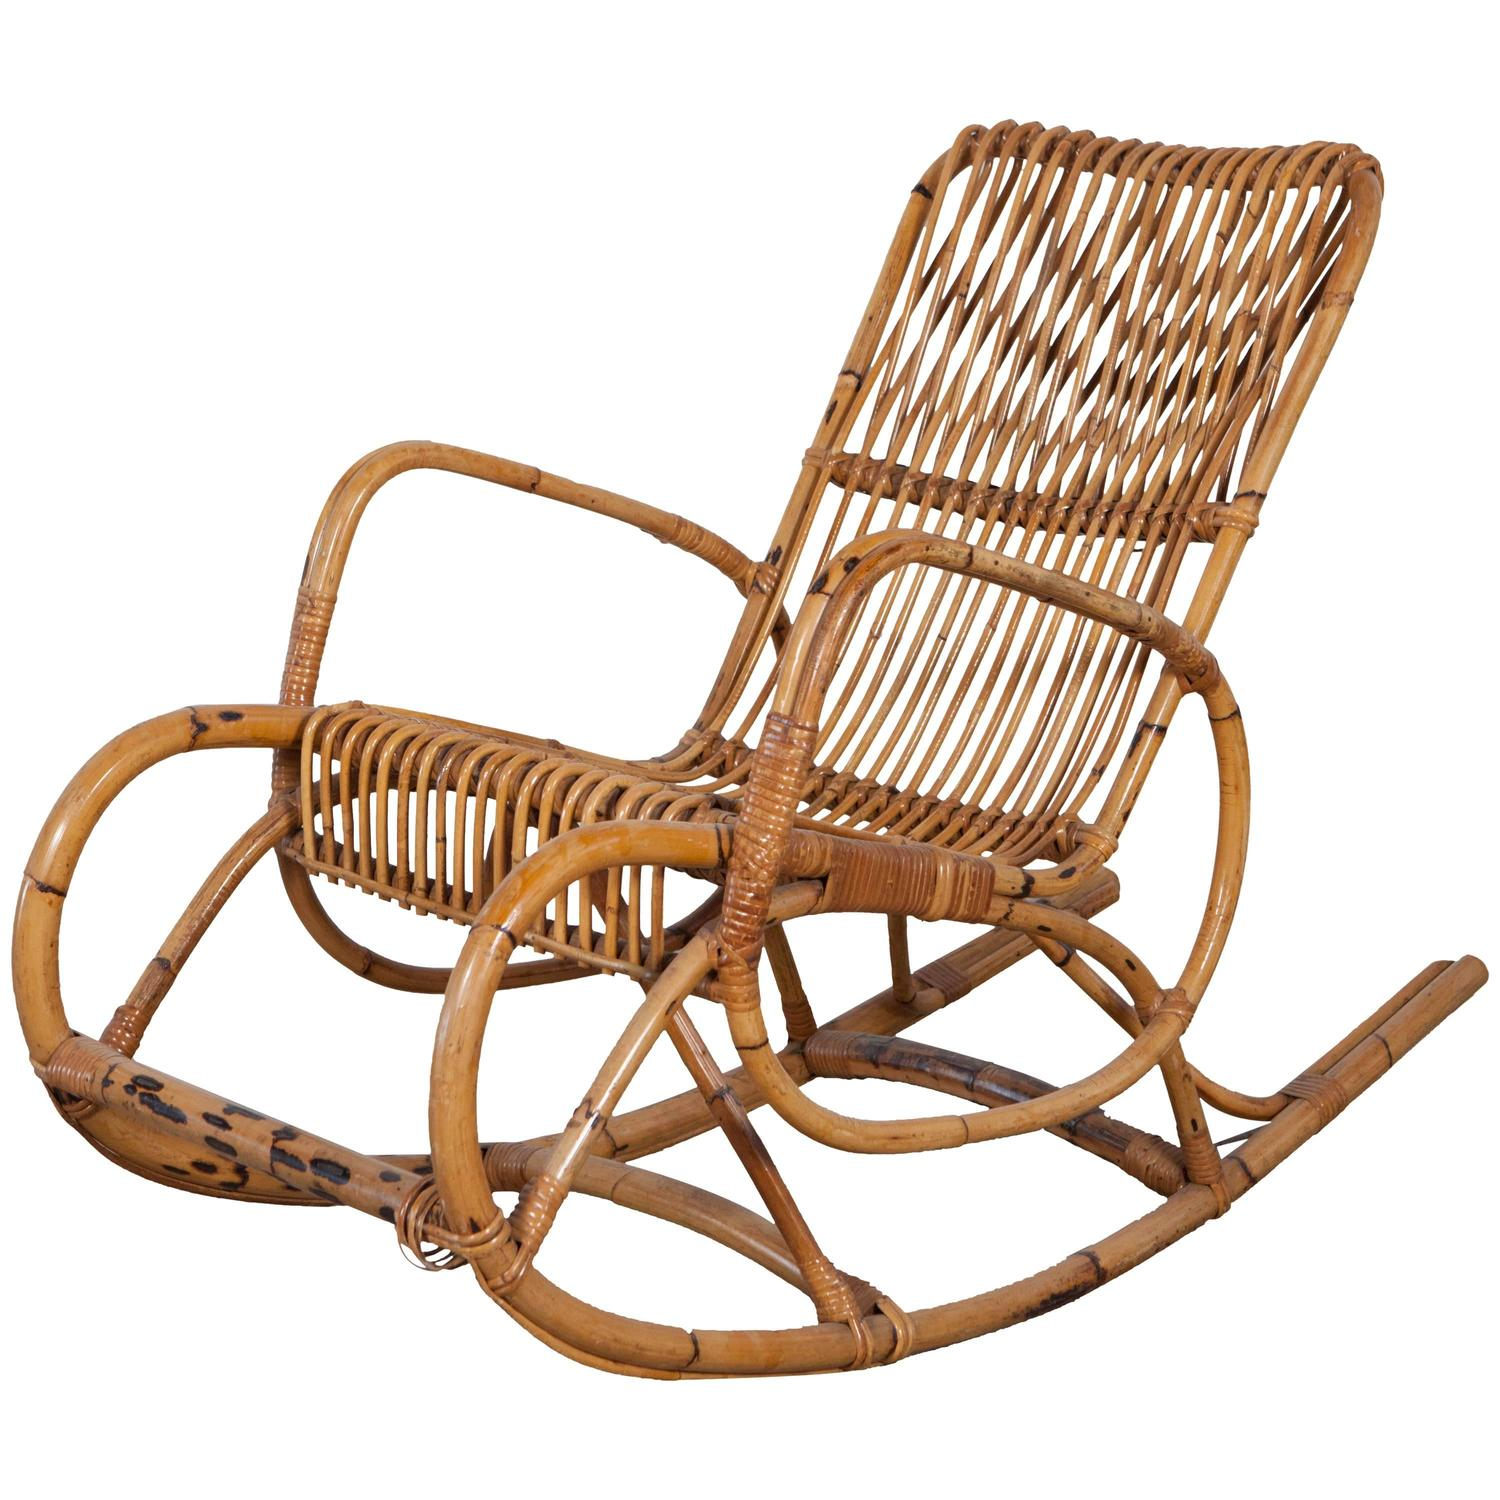 Rockin Chairs Vintage Italian Bamboo Rocking Chair With Square Arms For